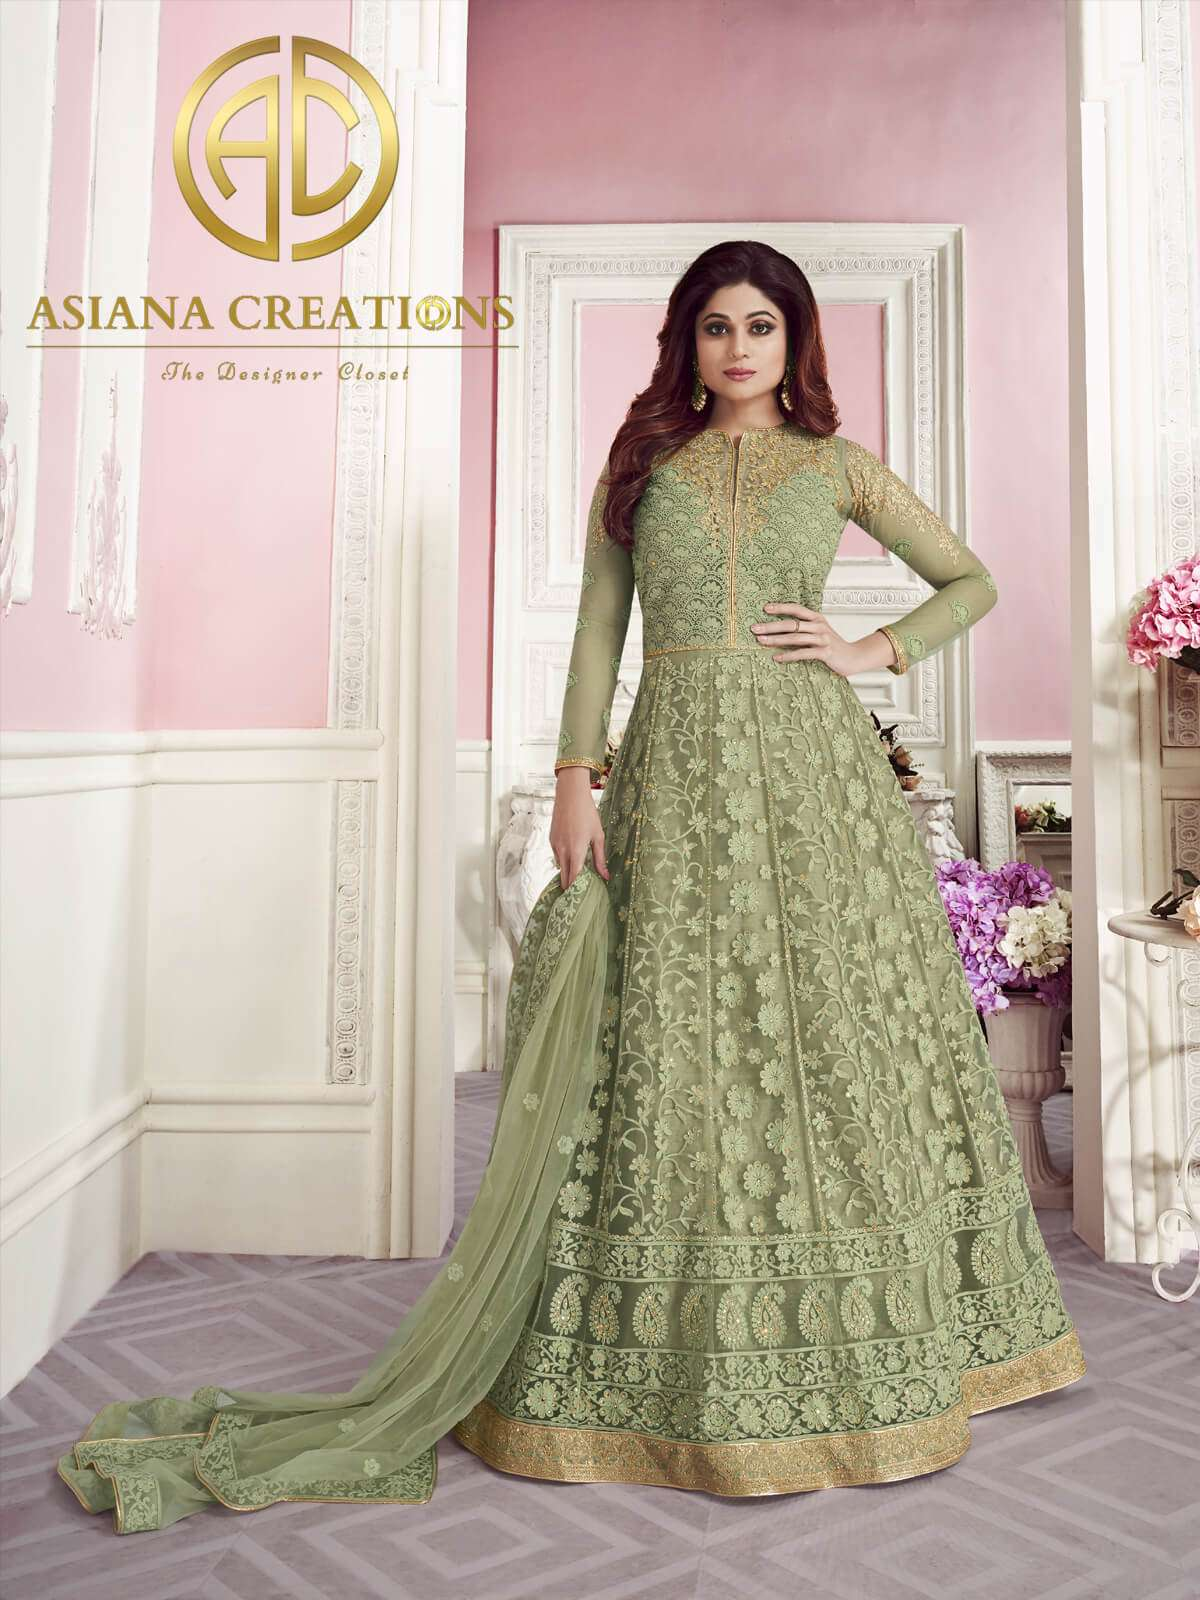 Shamita Shetty in Georgette Butterfly Net Olive Green Floor Length Anarkali Suit